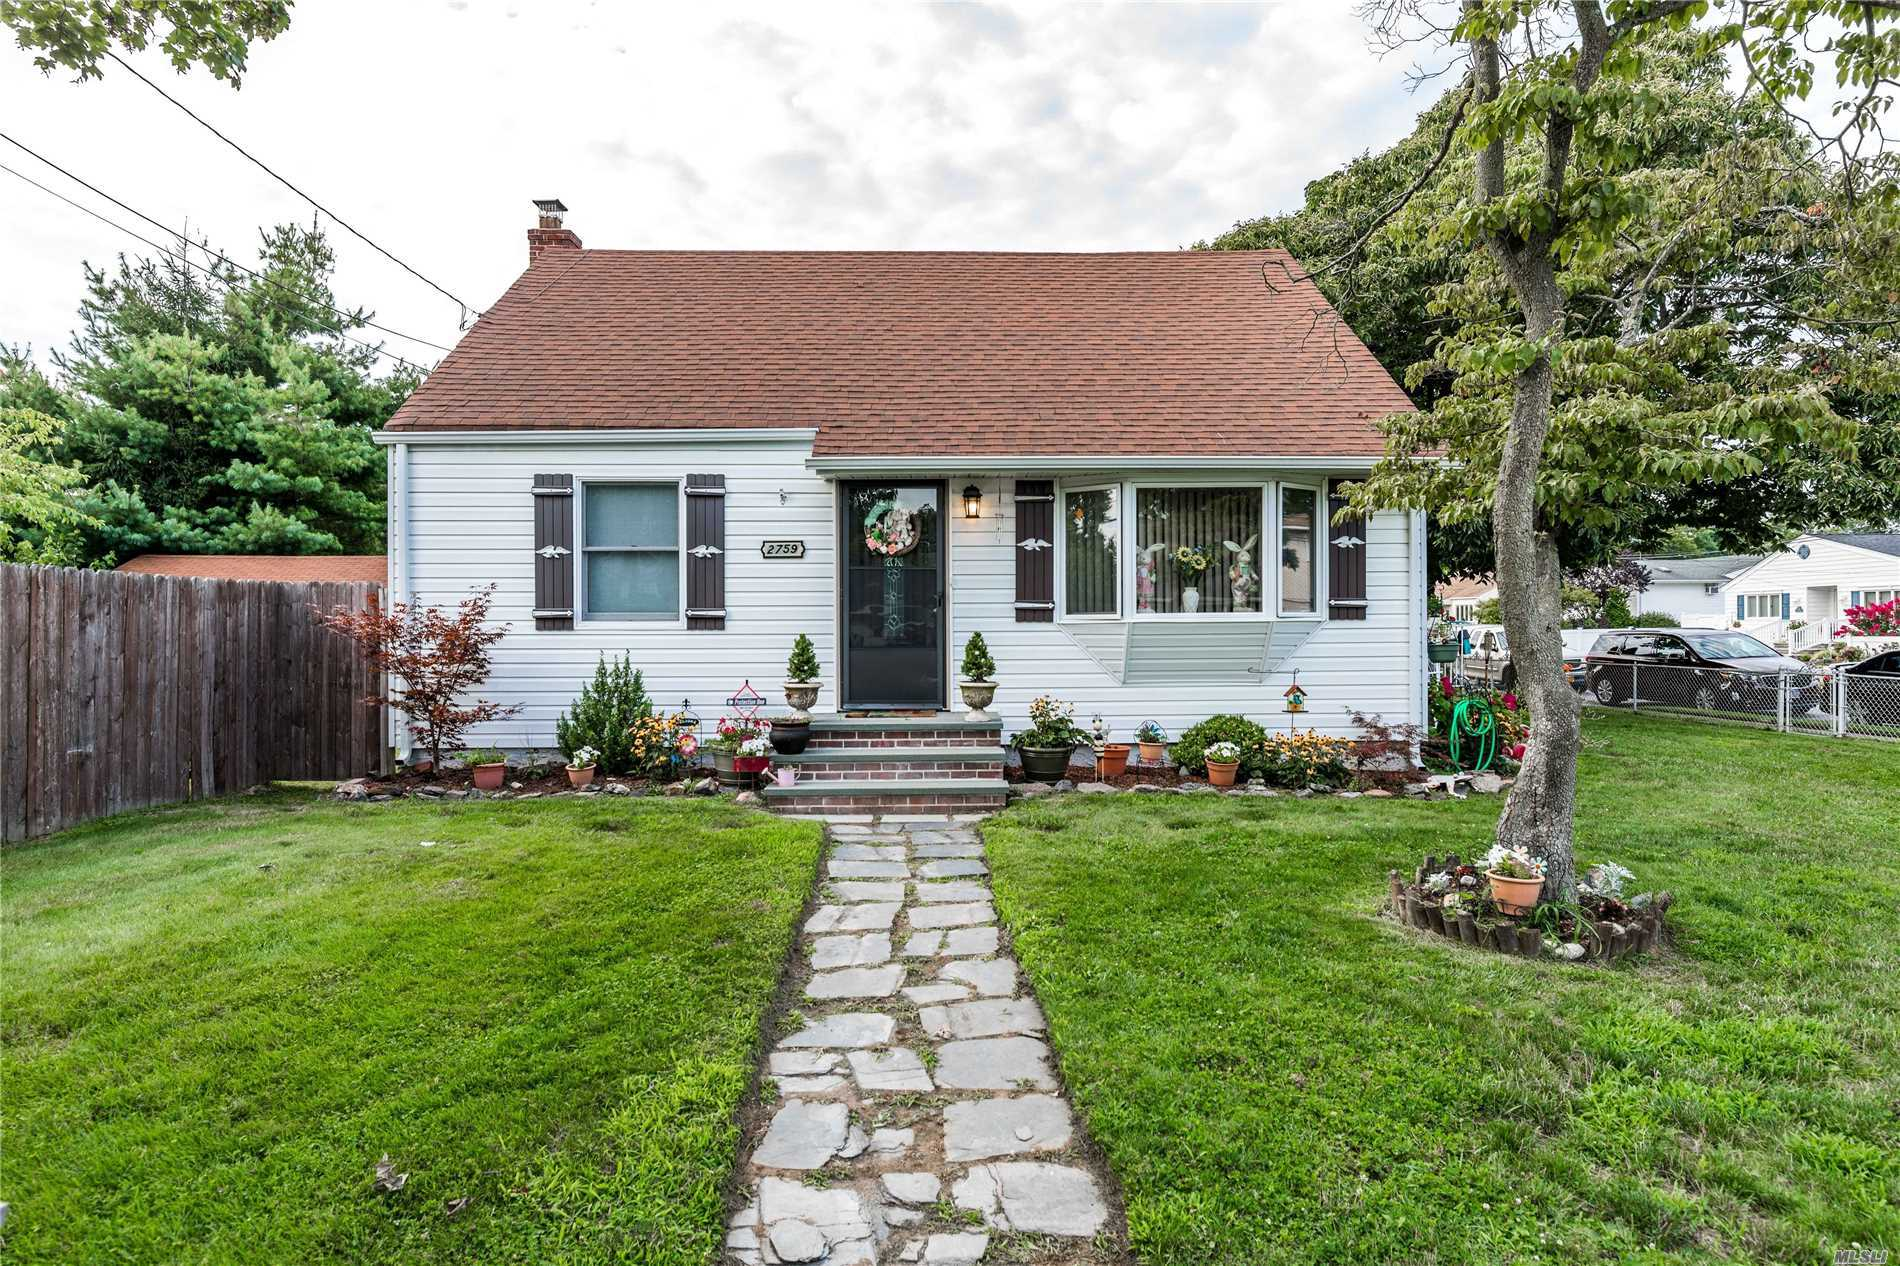 2759 Janet Ave - N. Bellmore, New York